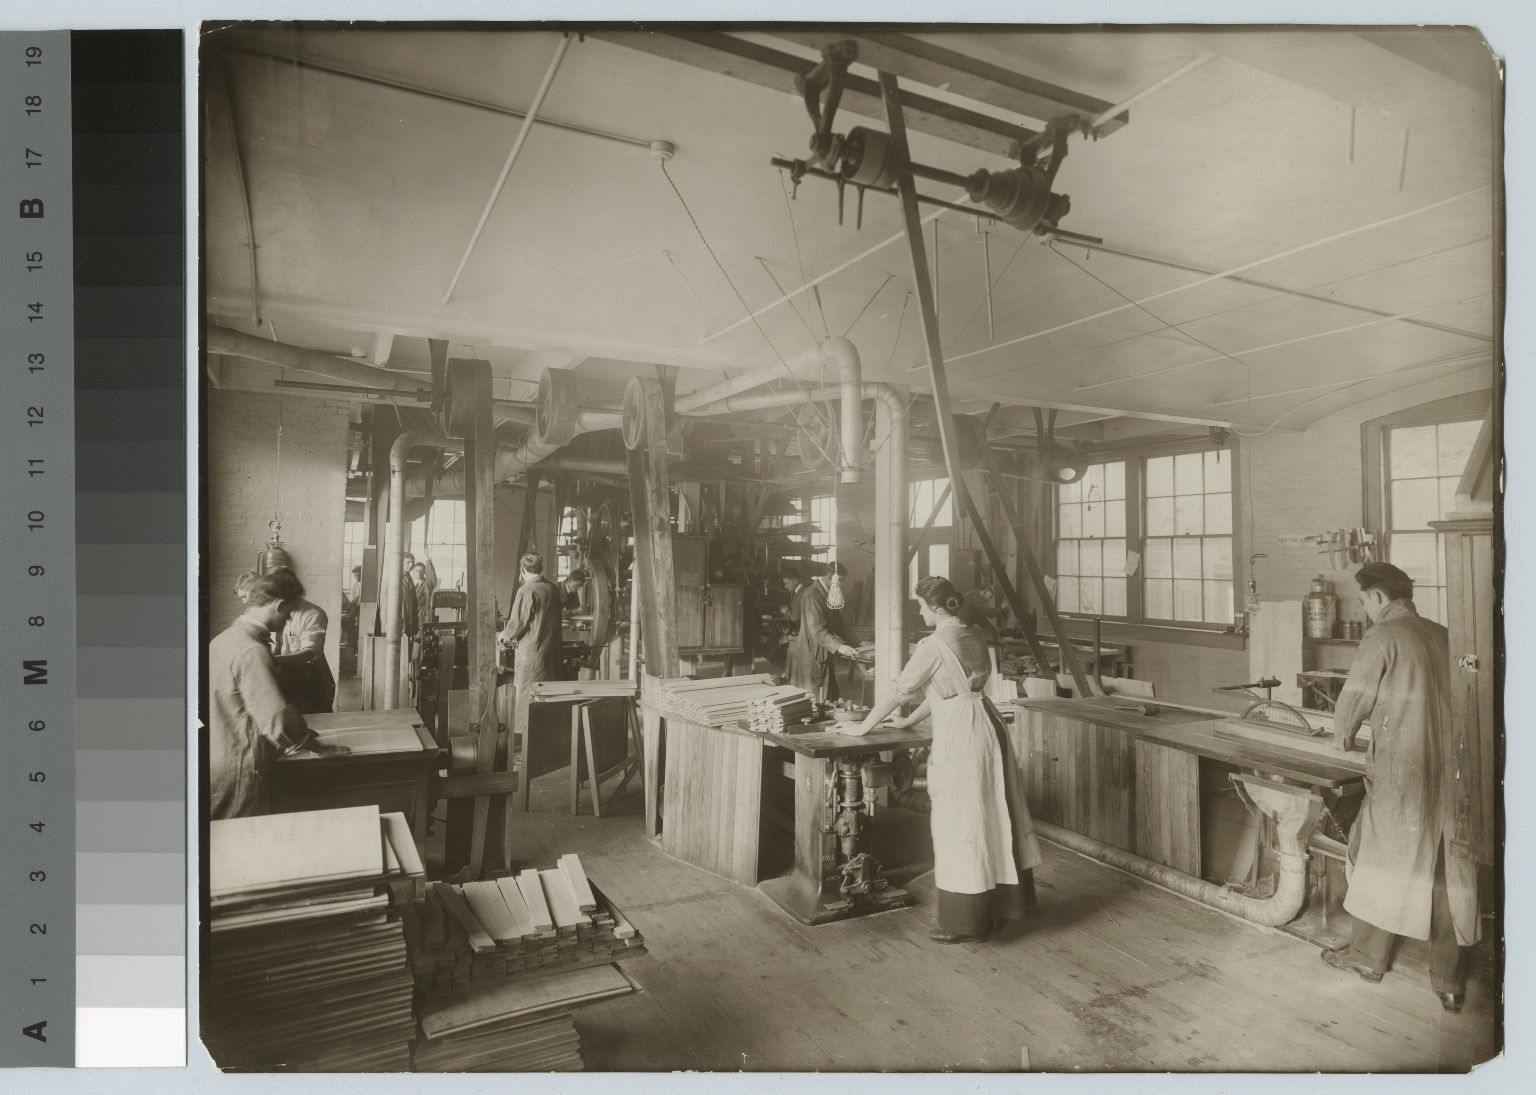 Students in woodworking shop, Department of Manual Training, Rochester Athenaeum and Mechanics Institute